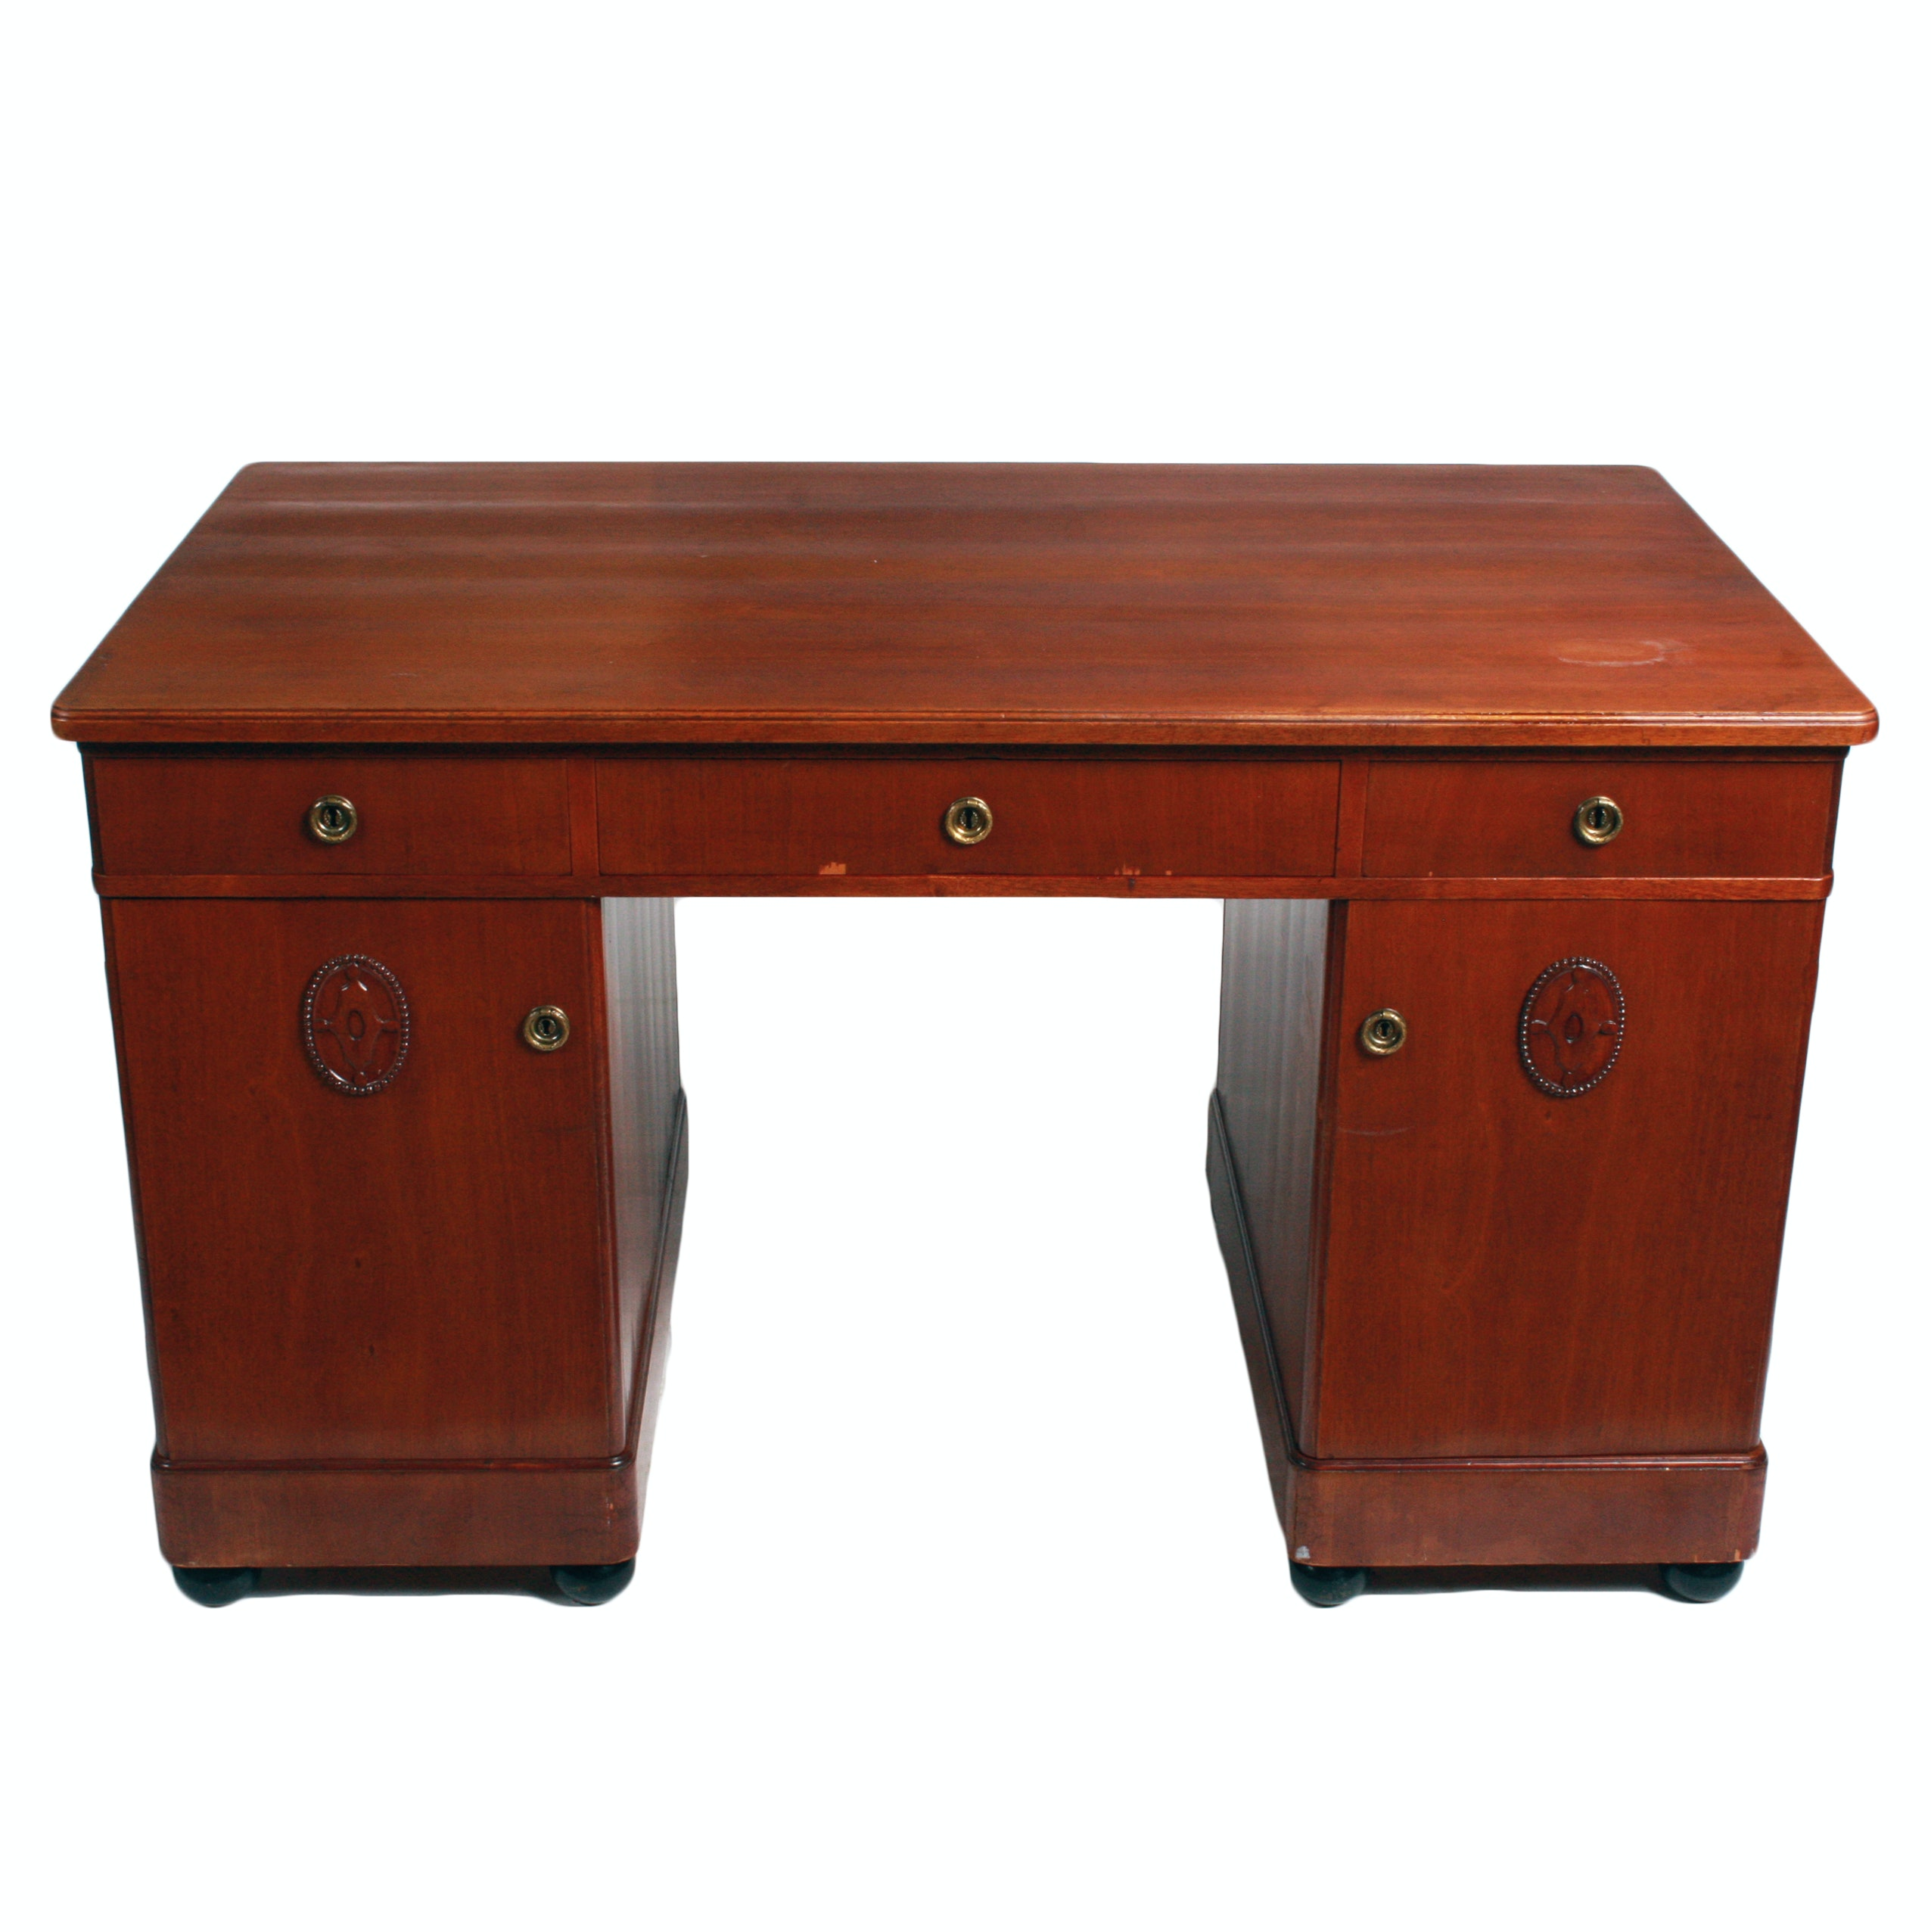 Vintage Cherry Veneered Kneehole Desk